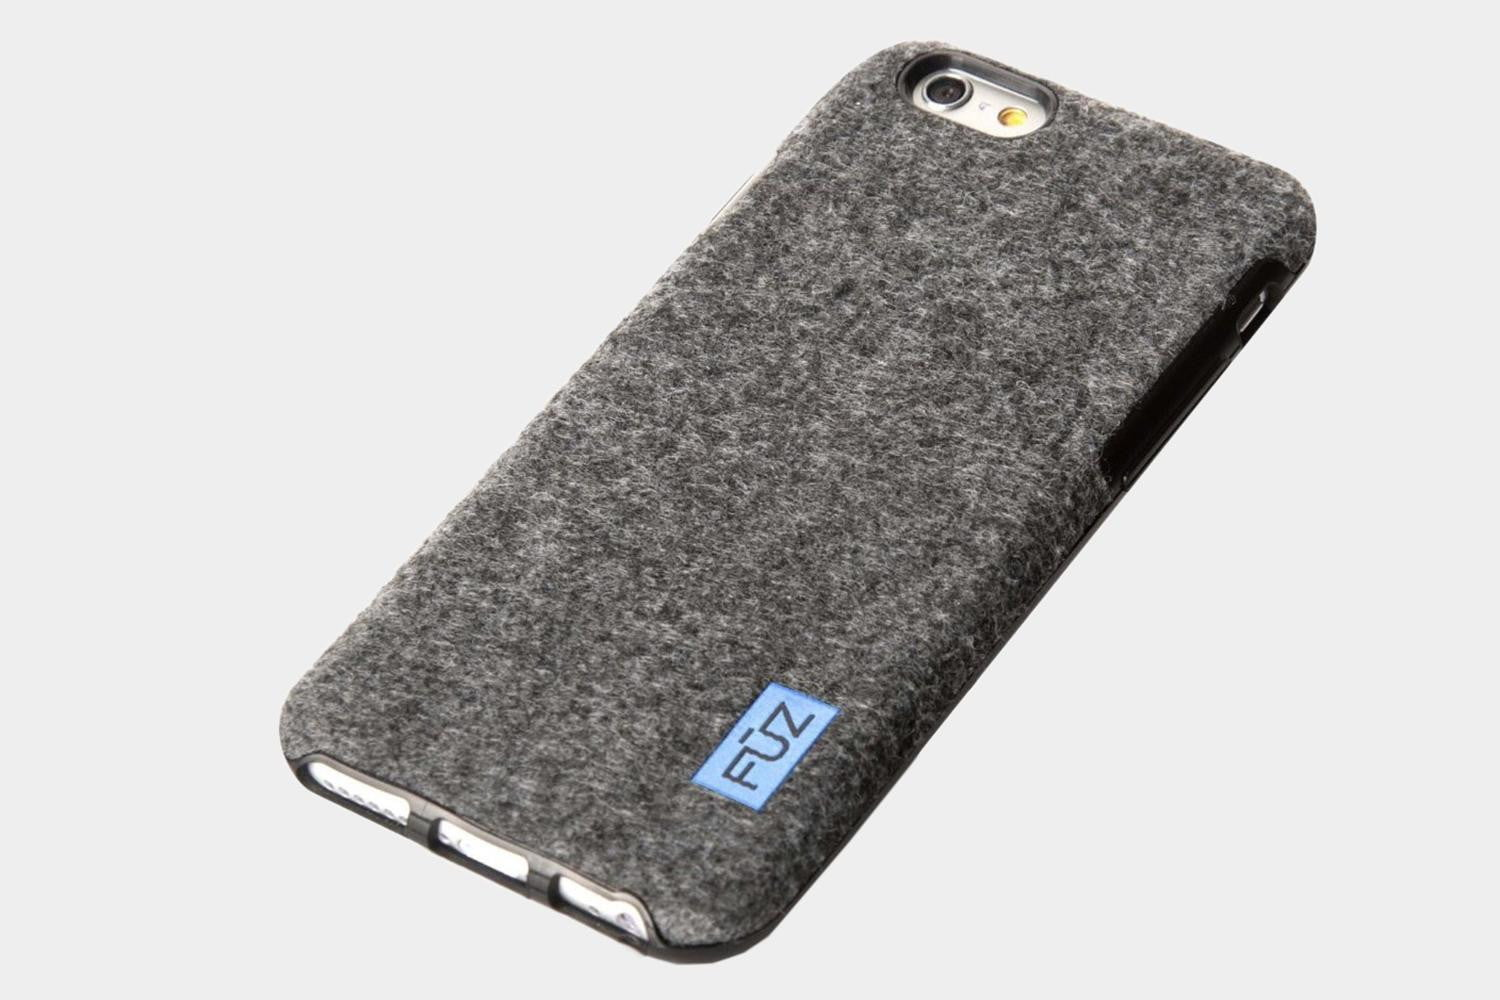 Image result for Do you Need Cases to Cover I Phone 6 or not